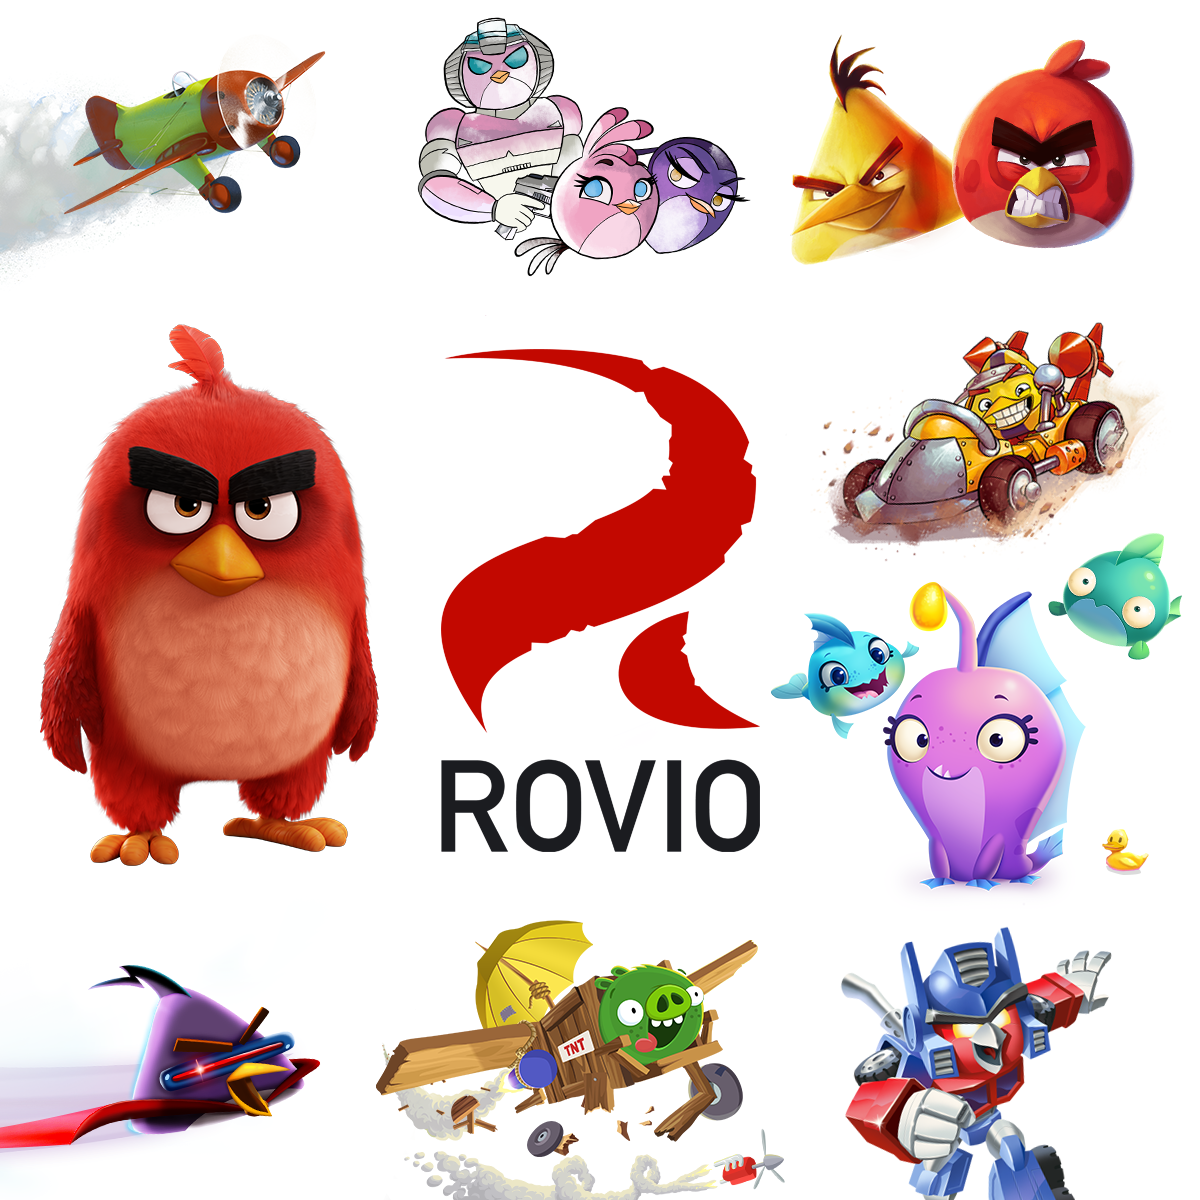 Angry Birds From Rovio Game-Consultant.com